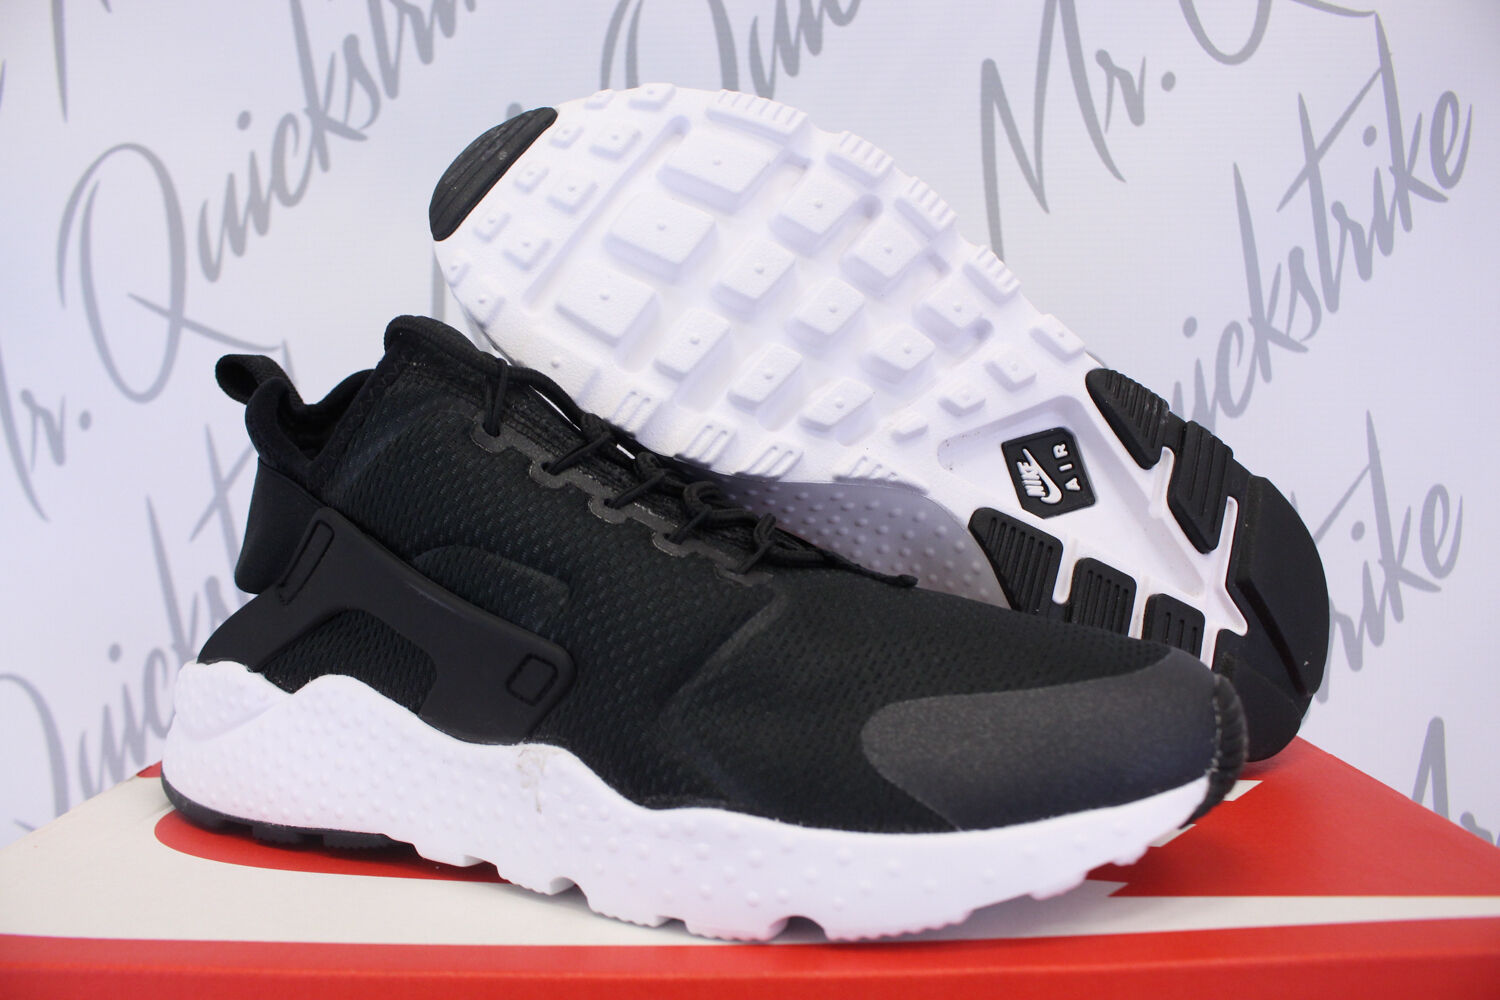 NIKE Damenschuhe AIR HUARACHE RUN ULTRA SZ 5 BLACK WEISS 819151 008